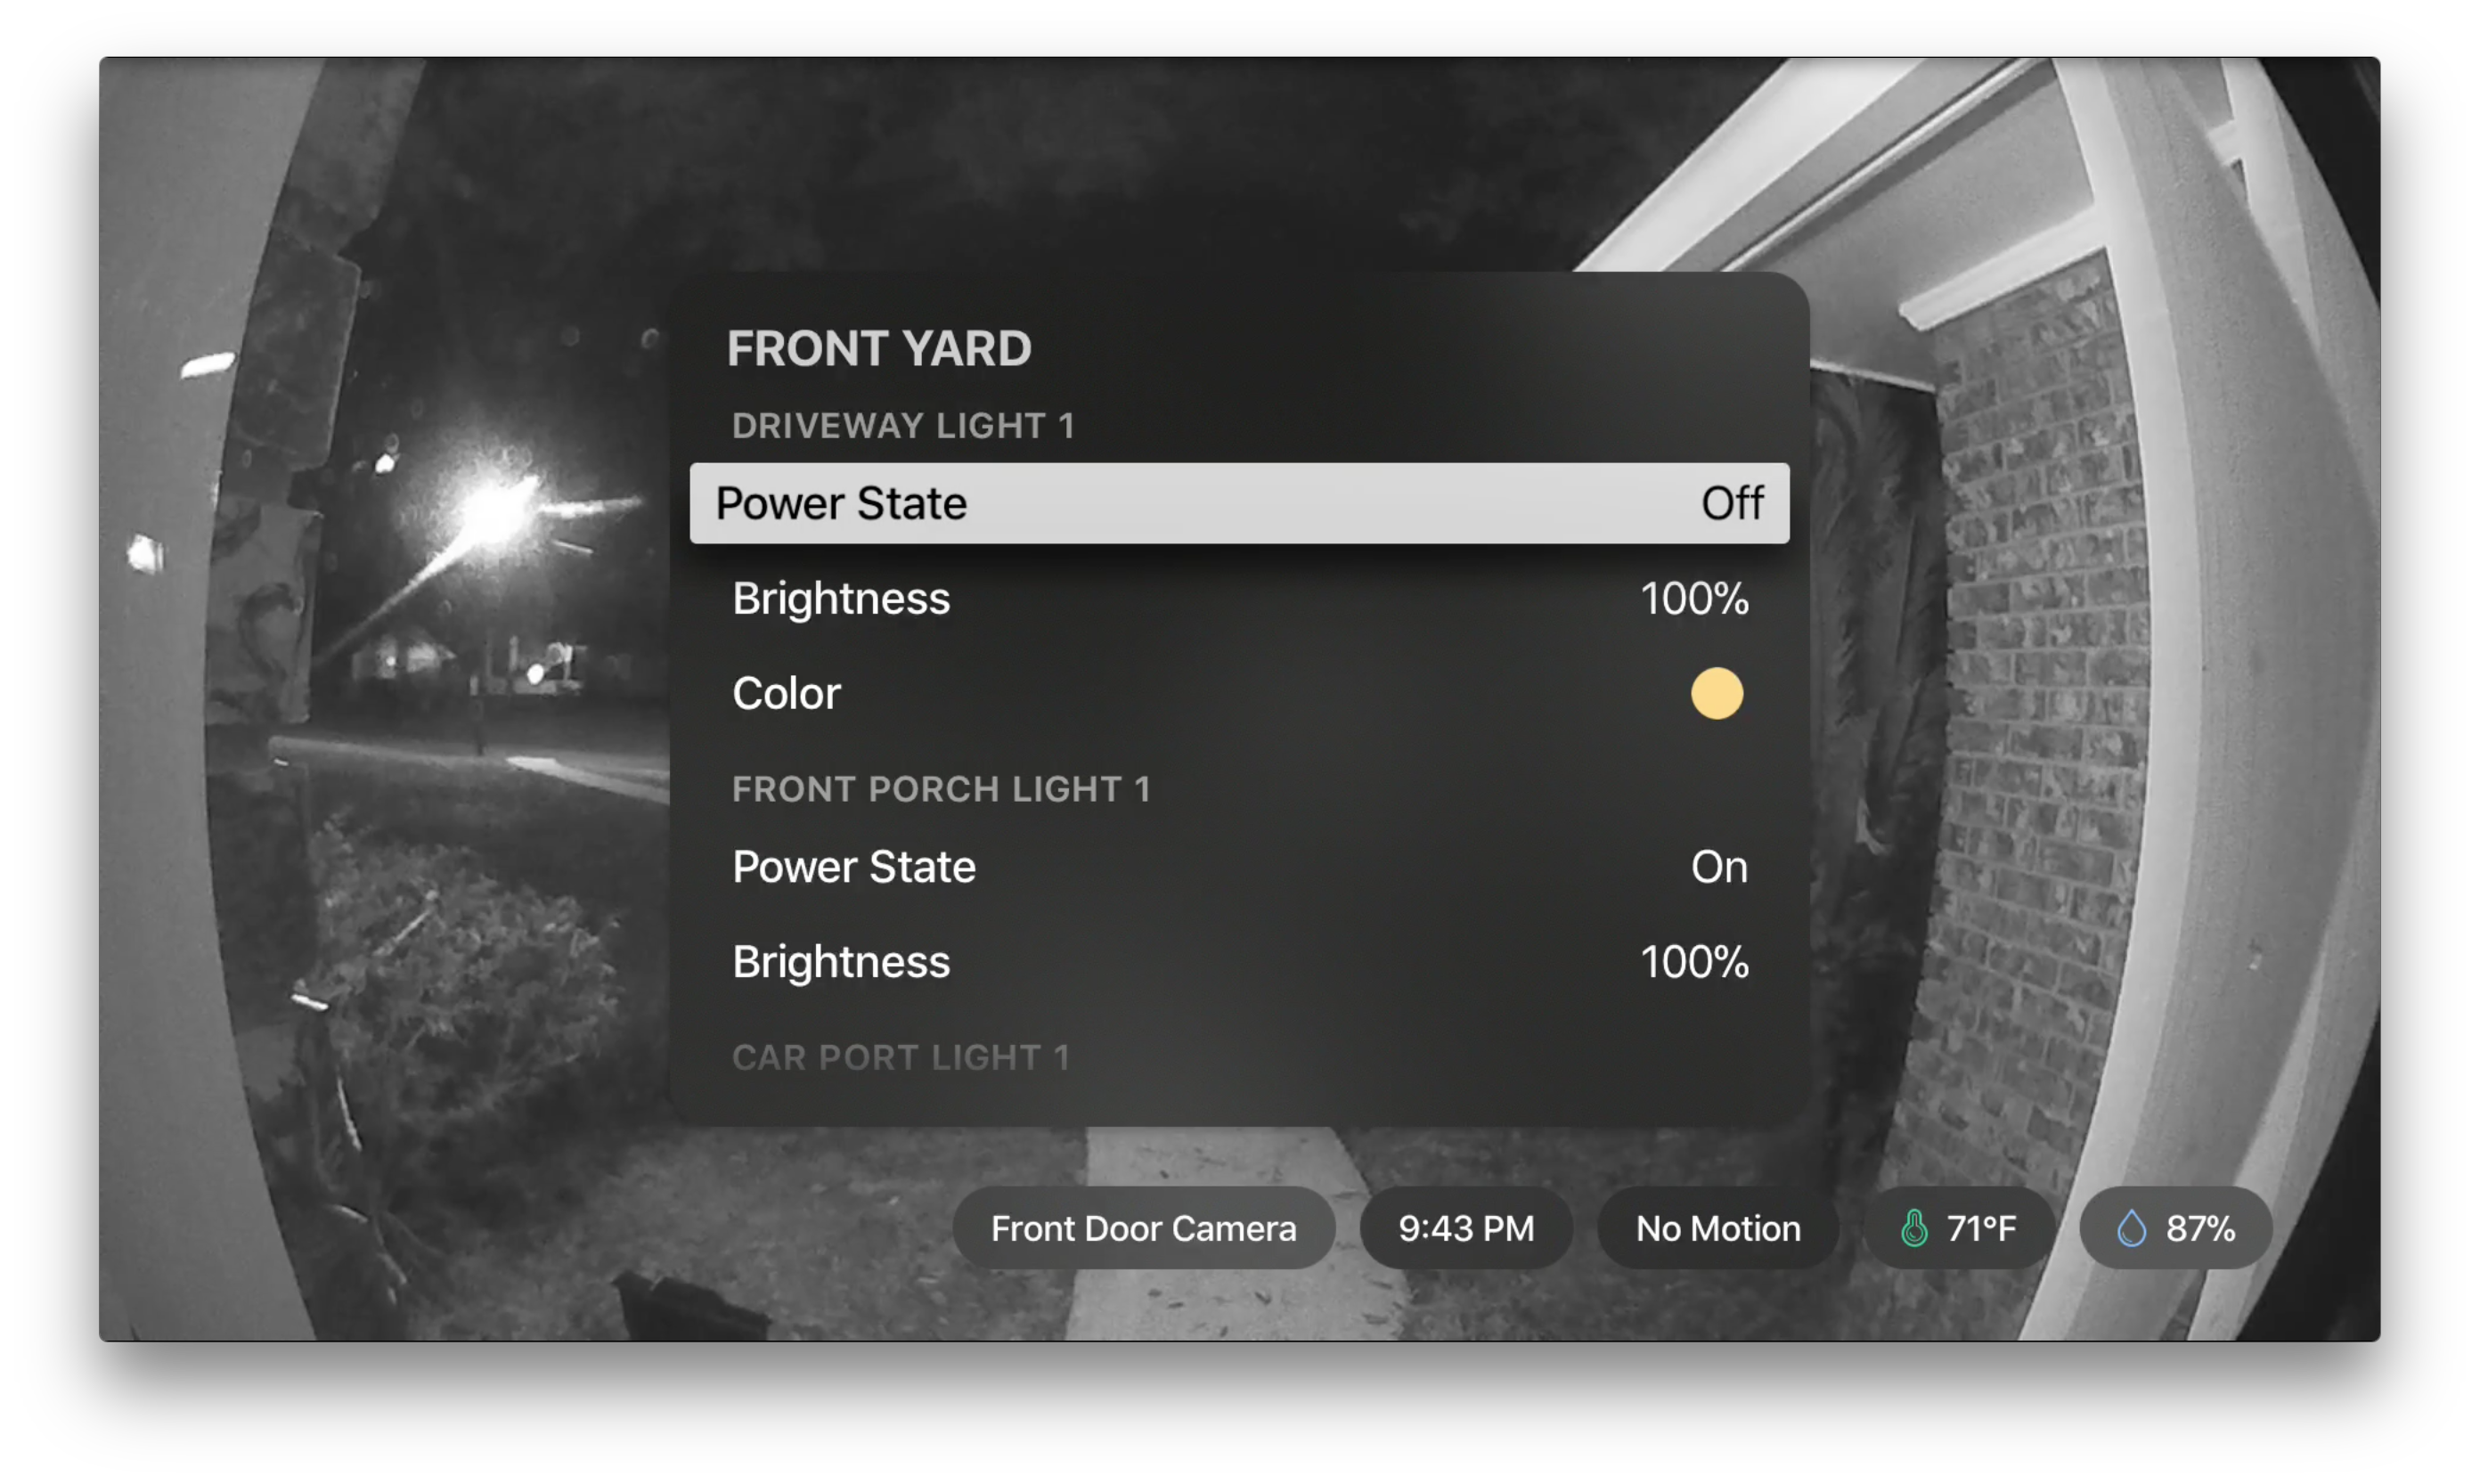 Homecam app for HomeKit cameras gains powerful new controls, video